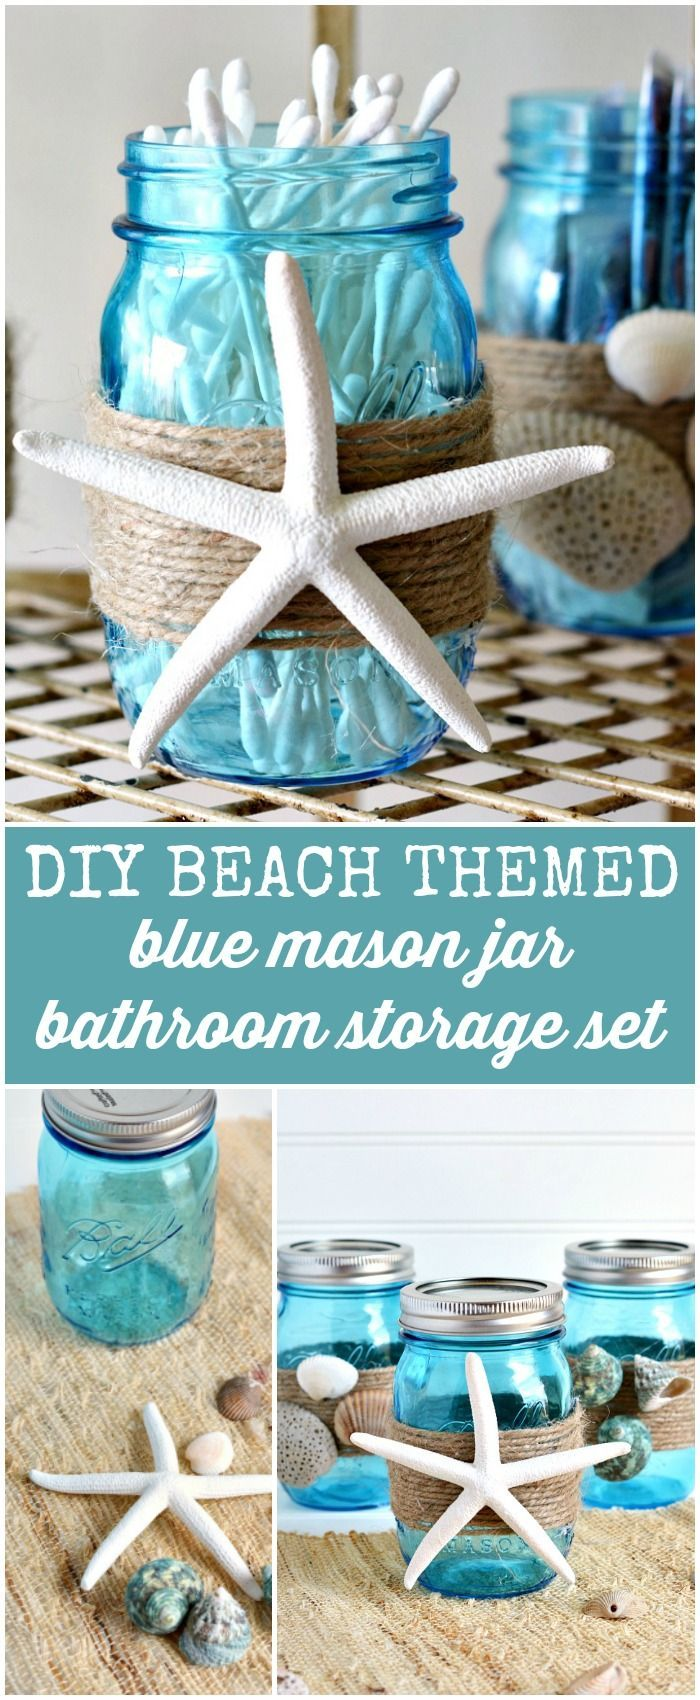 How to Make a DIY Beach Themed Blue Ball Mason Jar Bathroom Storage Set